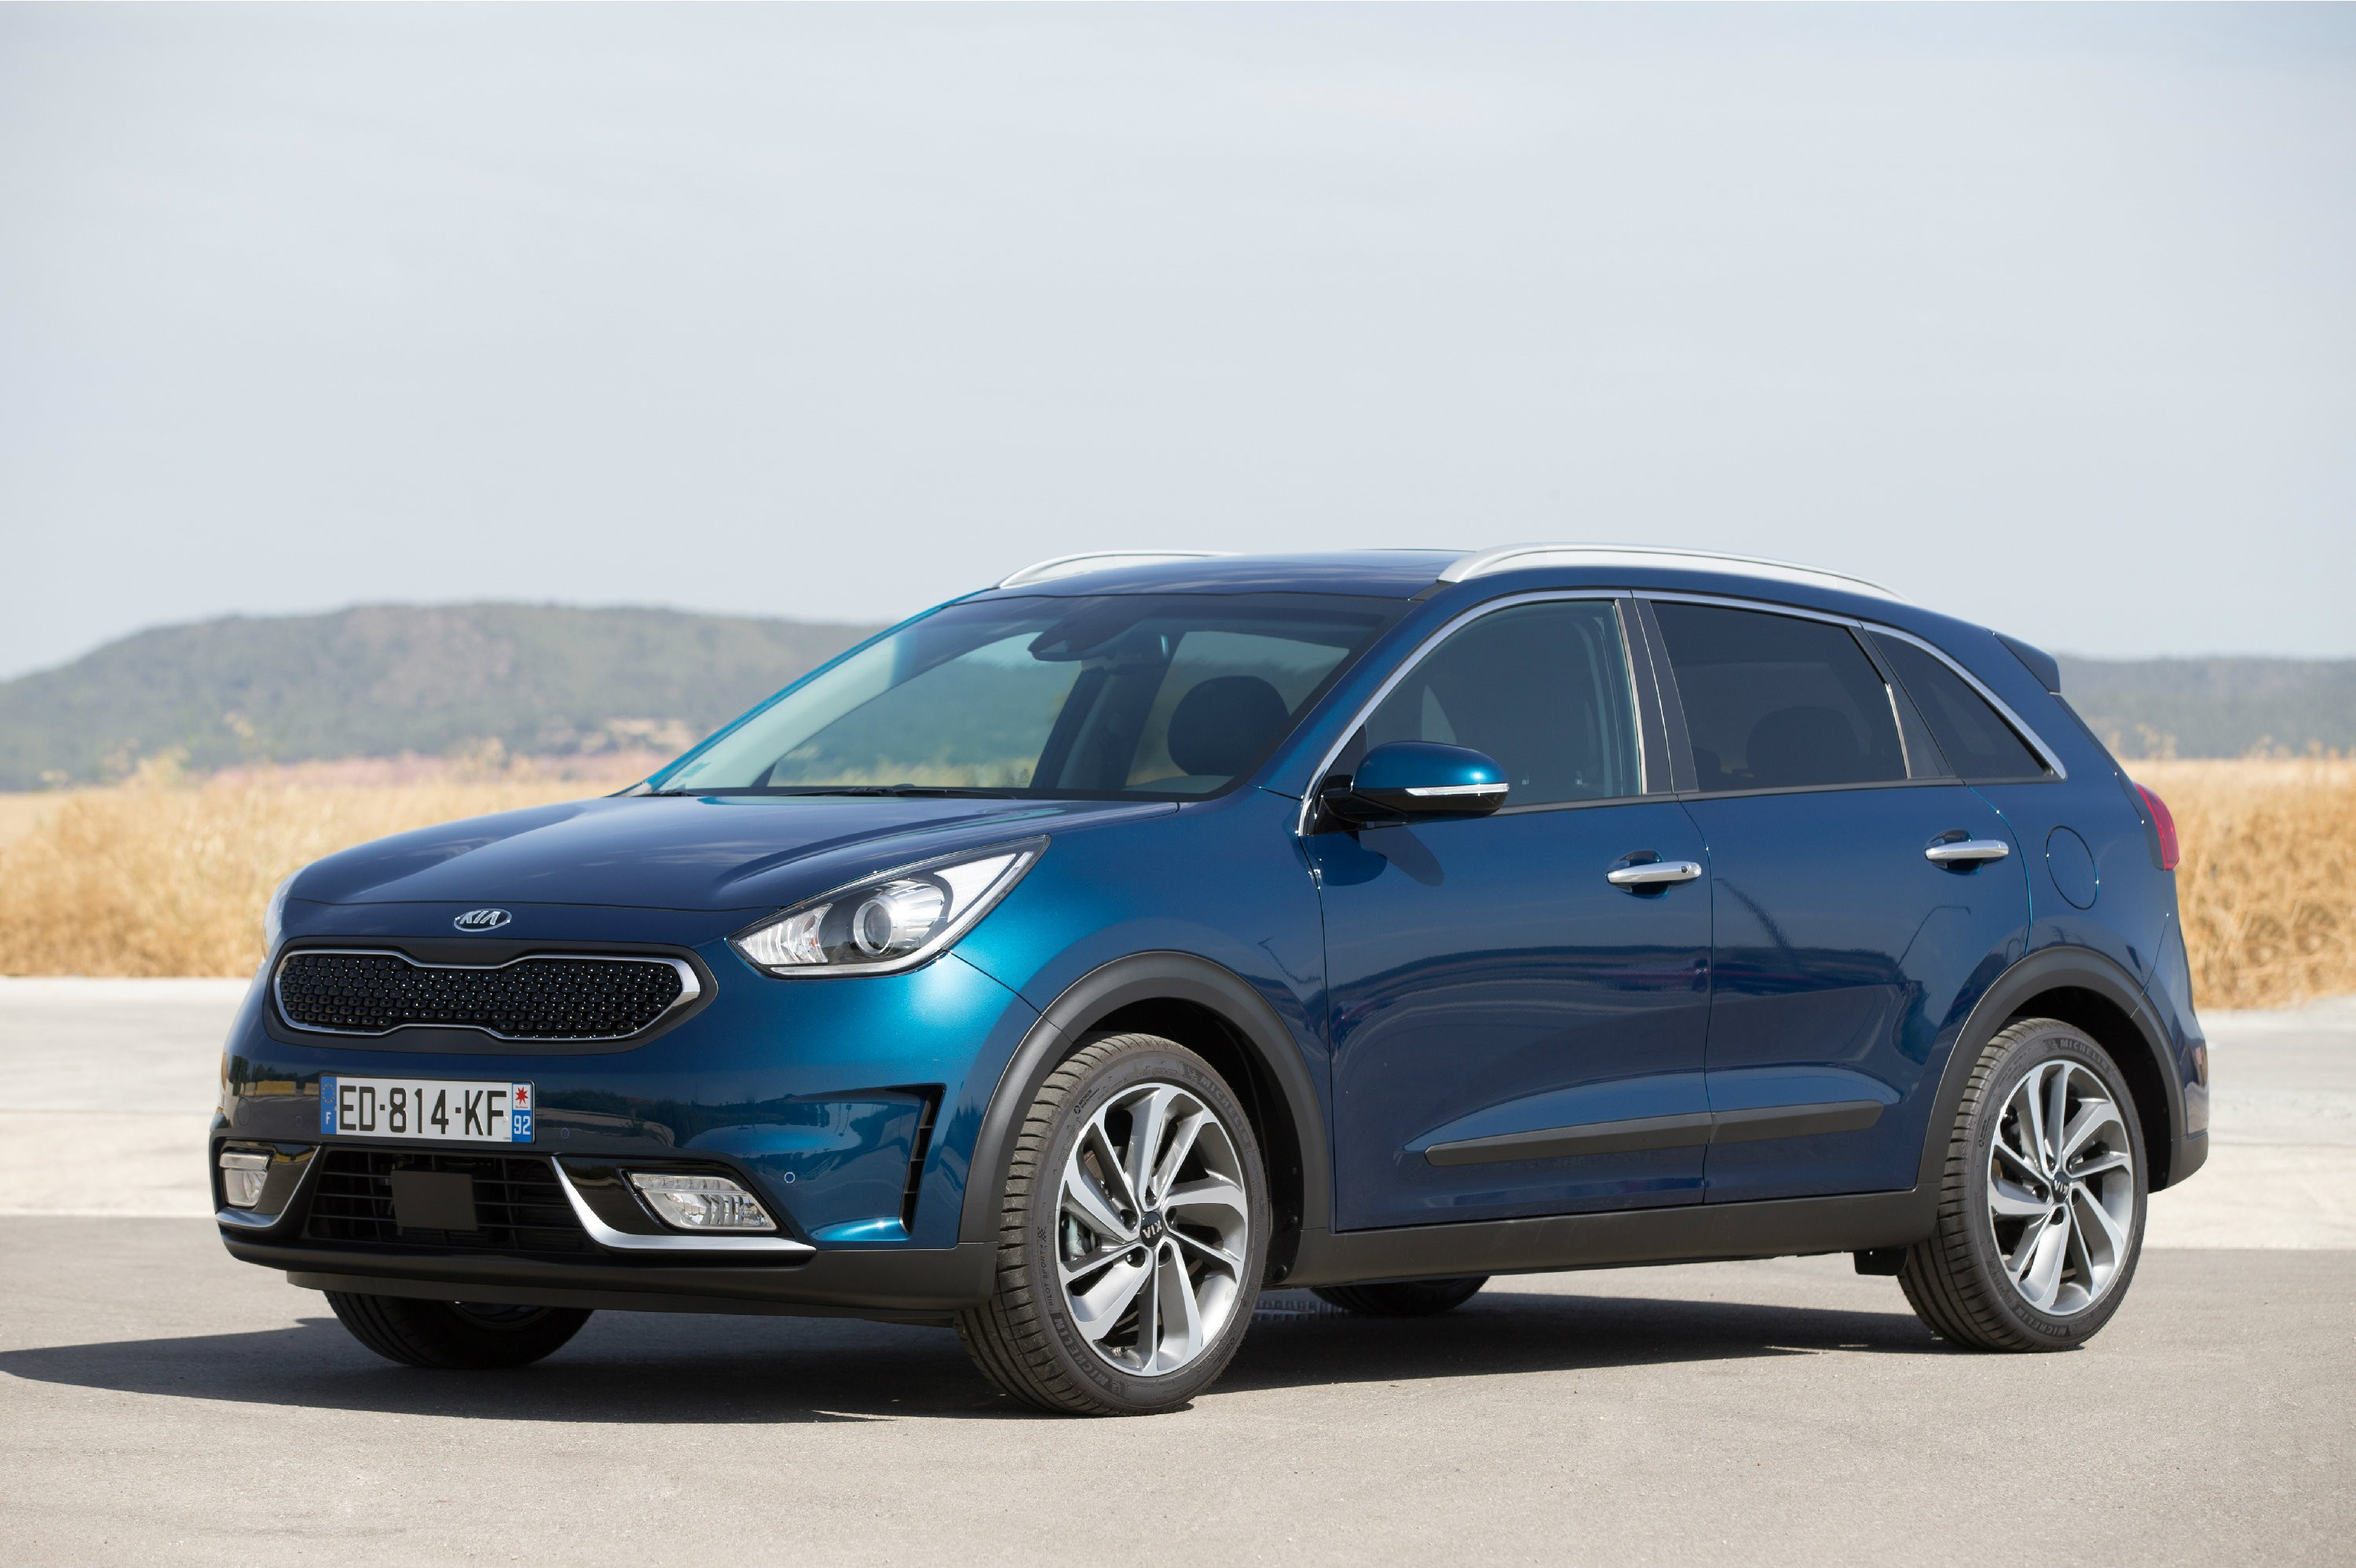 2017 kia niro priced in europe autoevolution. Black Bedroom Furniture Sets. Home Design Ideas